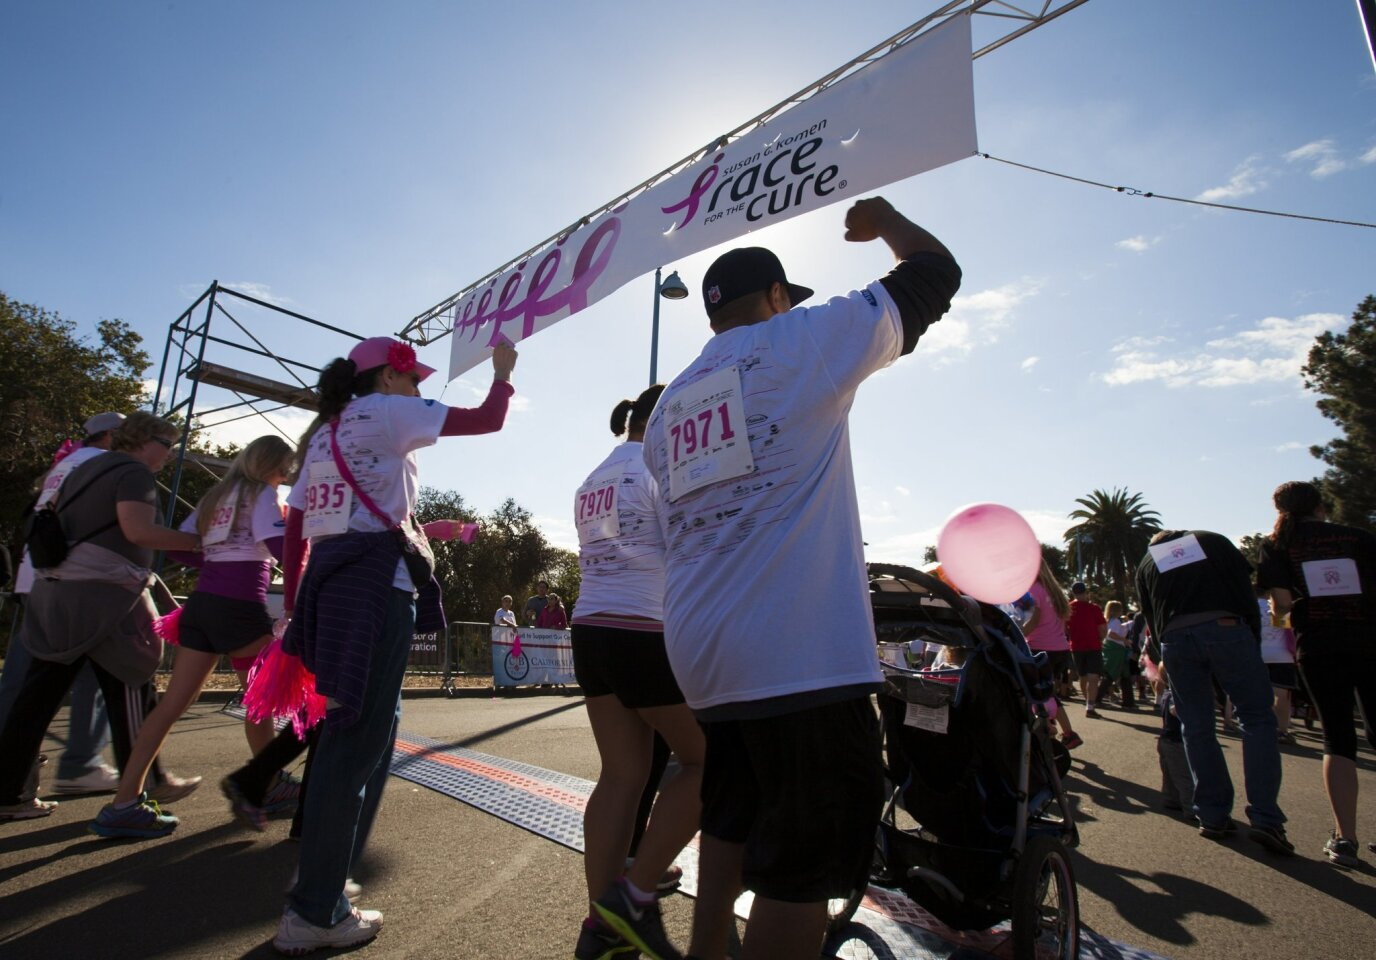 1000s race through park to fight breast cancer